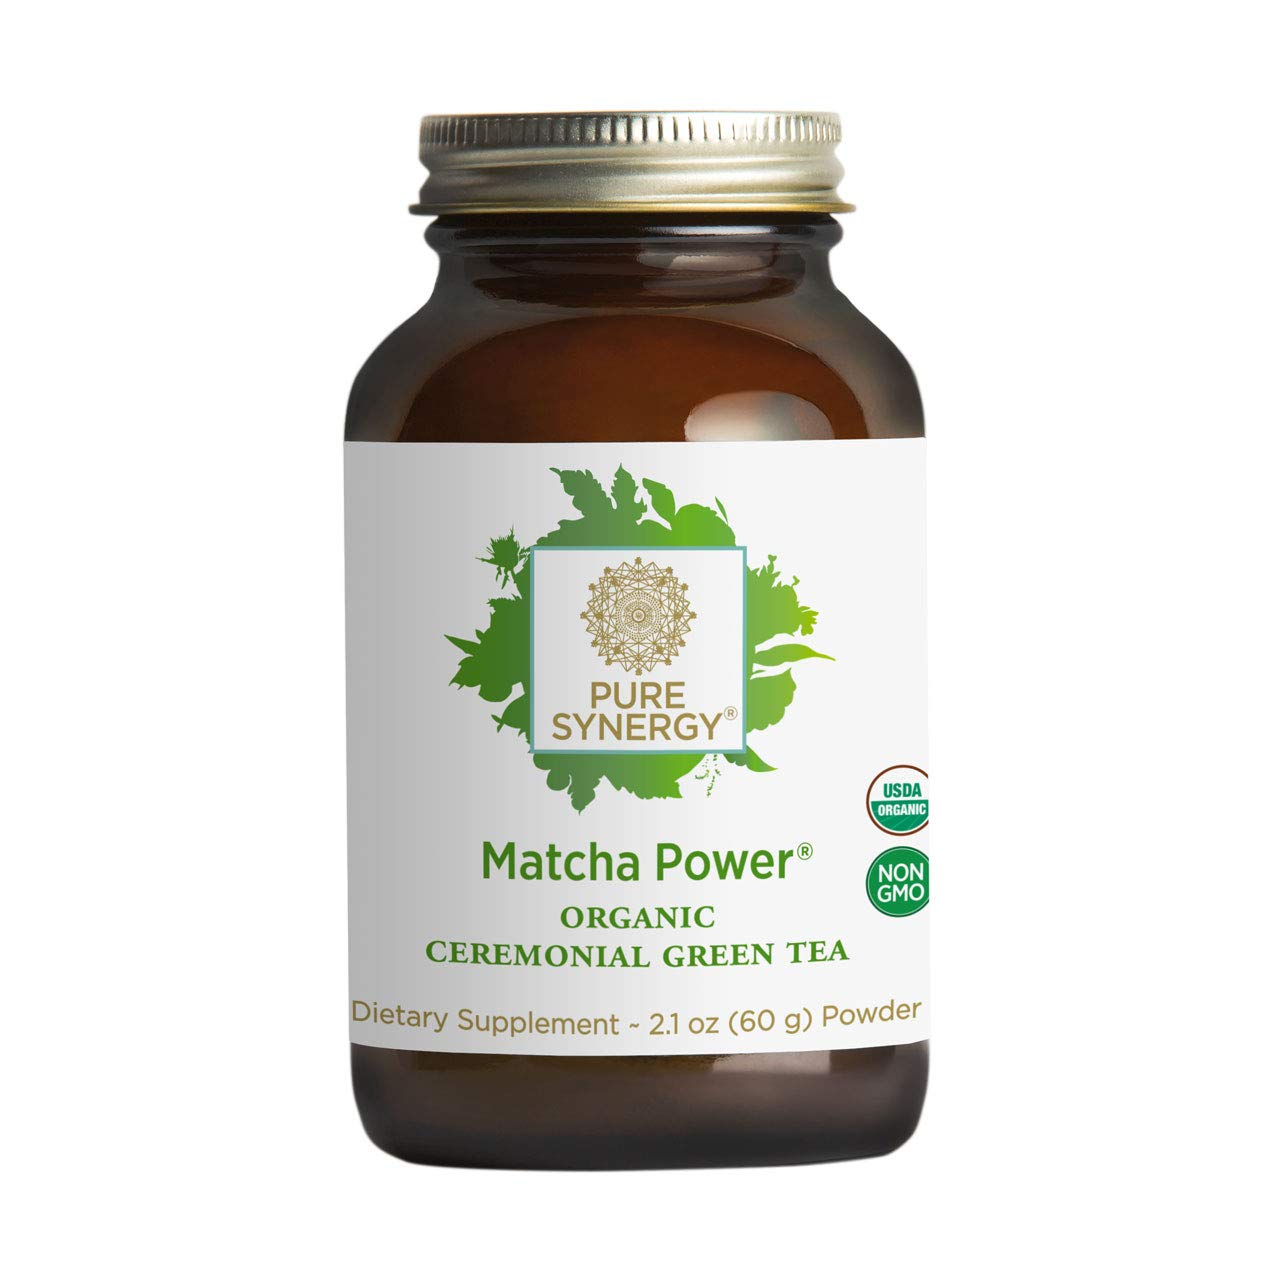 Pure Synergy USDA Organic Matcha Power (2.1 oz Powder) Ceremonial Japanese Green Tea Powder